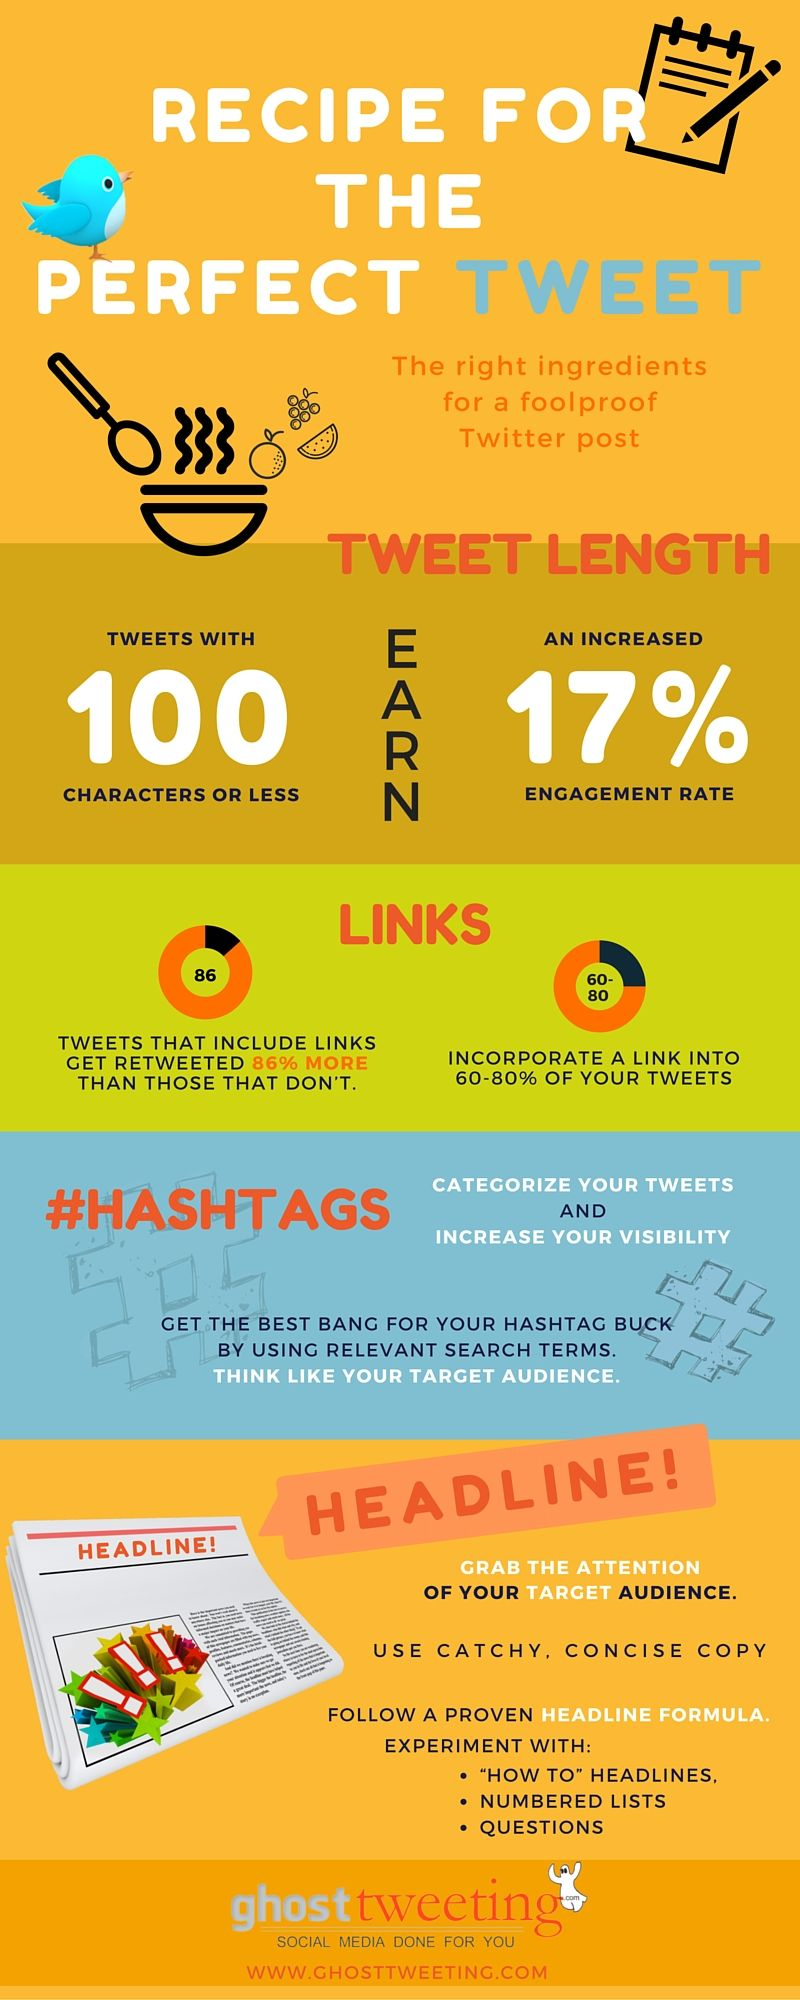 How To Write A Great Tweet Social Media Marketing Management Twitter Marketing Strategy Social Media Infographic Twitter For Business